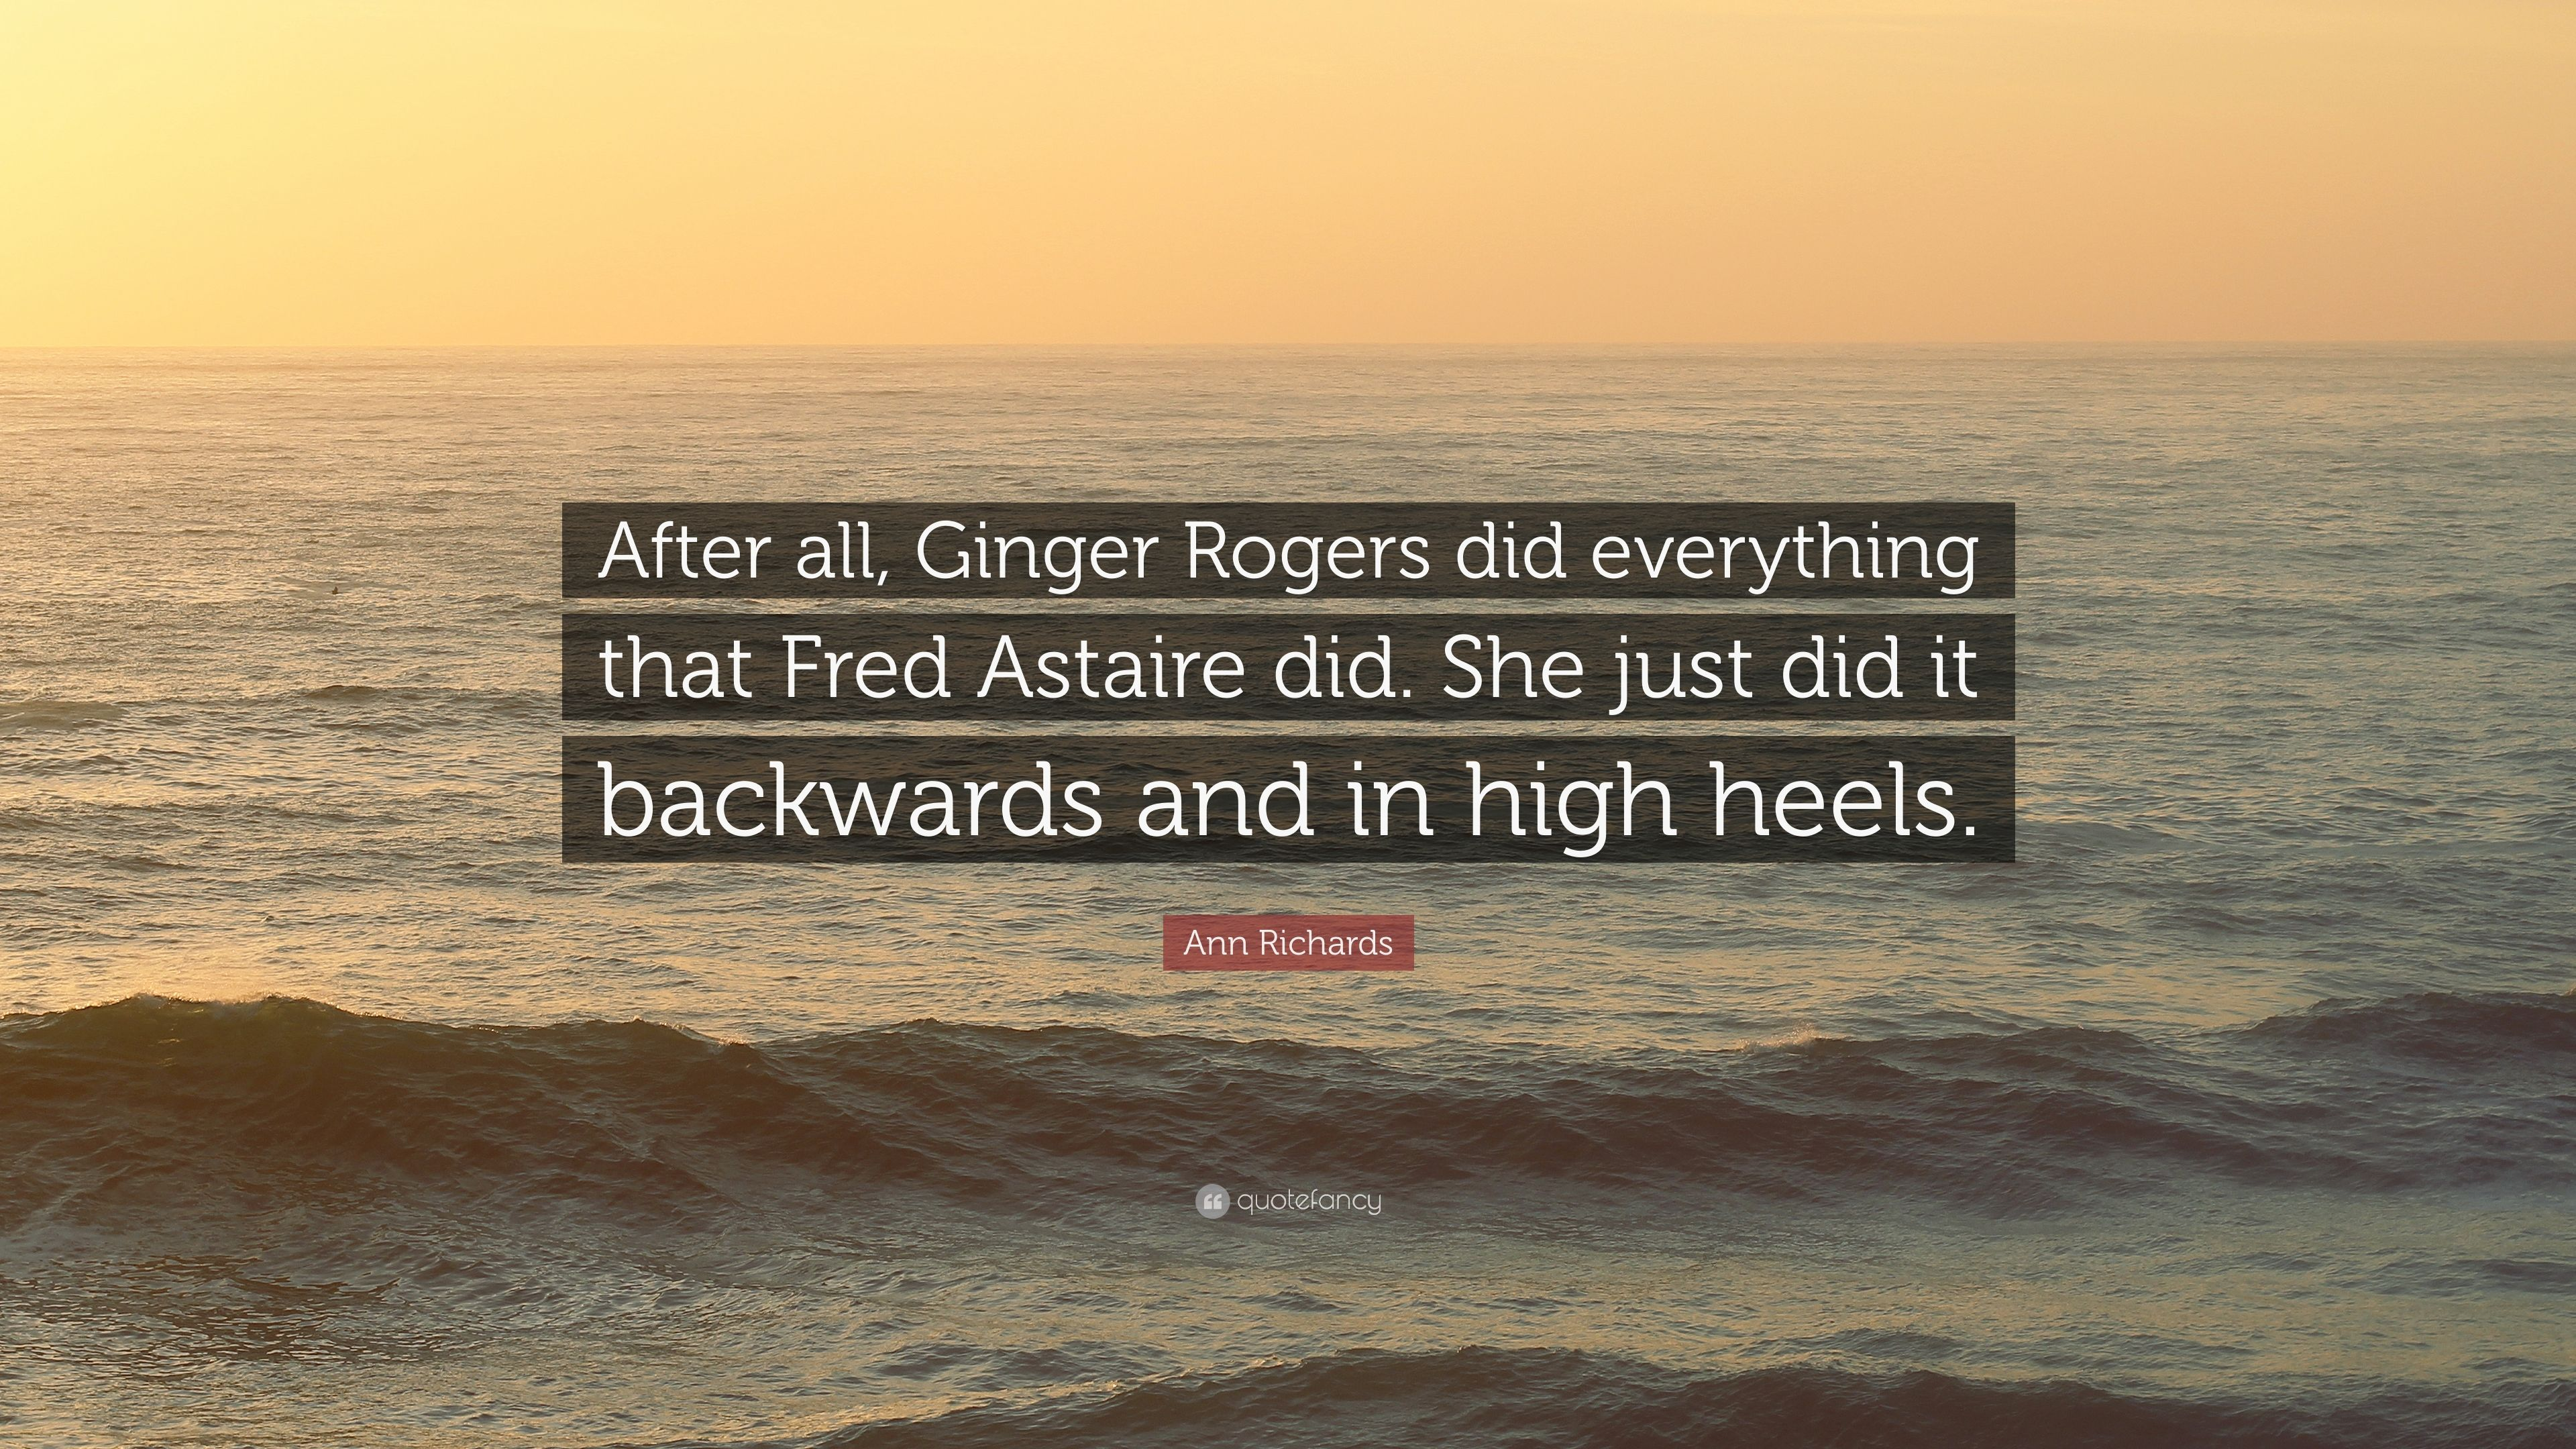 Ann Richards Quote After All Ginger Rogers Did Everything That Fred Astaire Did She Just Did It Backwards And In High Heels 9 Wallpapers Quotefancy